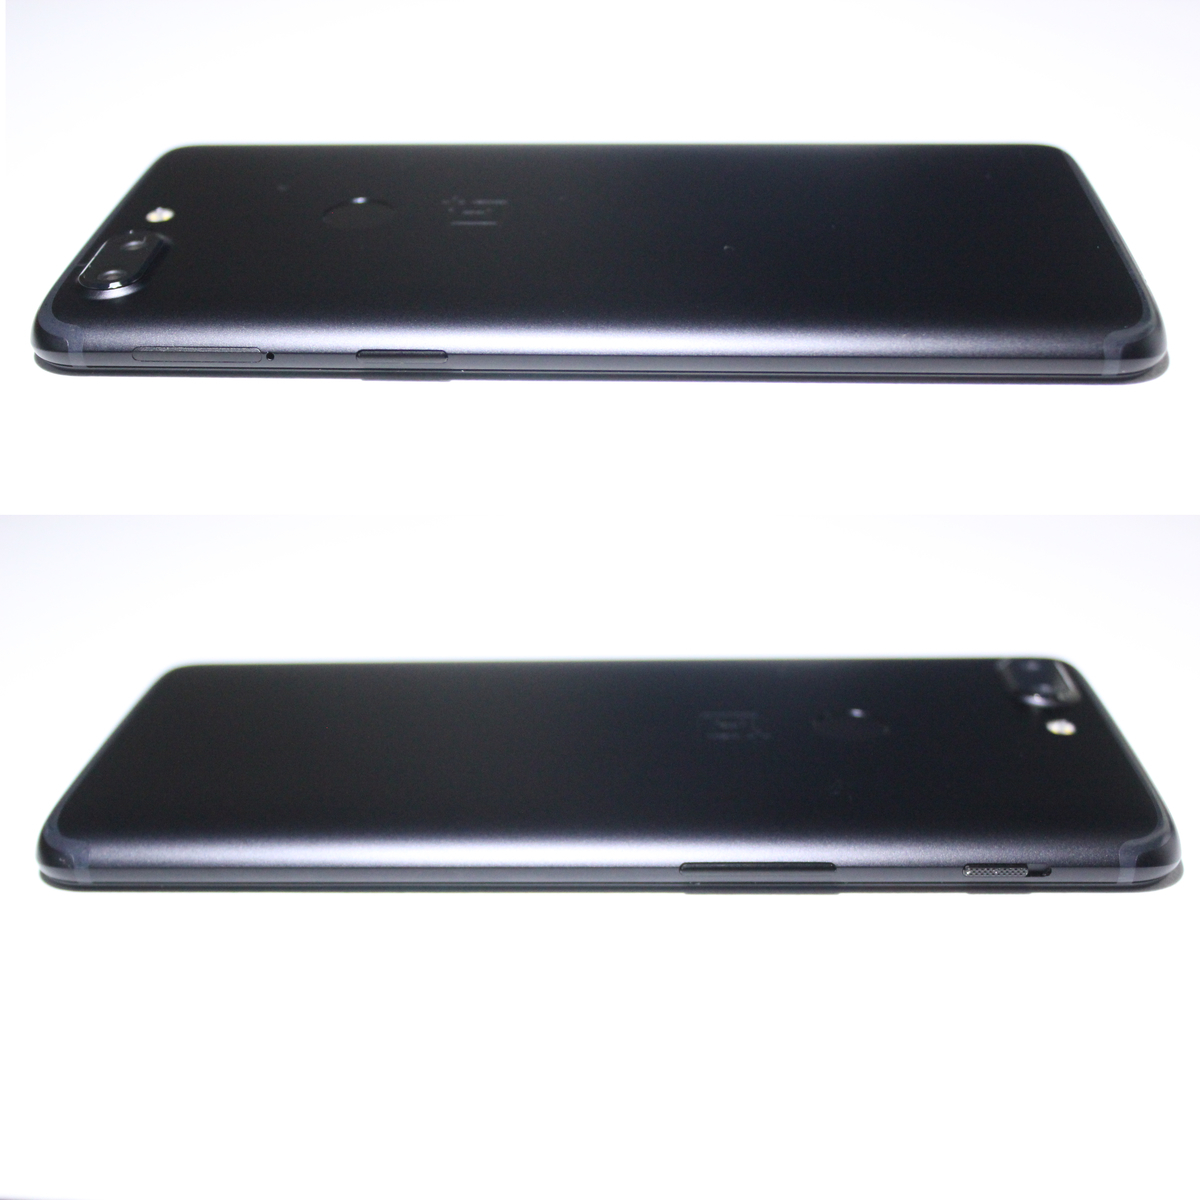 [ 8GB/128GB ] OnePlus 5T A5010 SIMフリー Android 8 アンドロイド Android8 アンドロイド8 /1_画像3